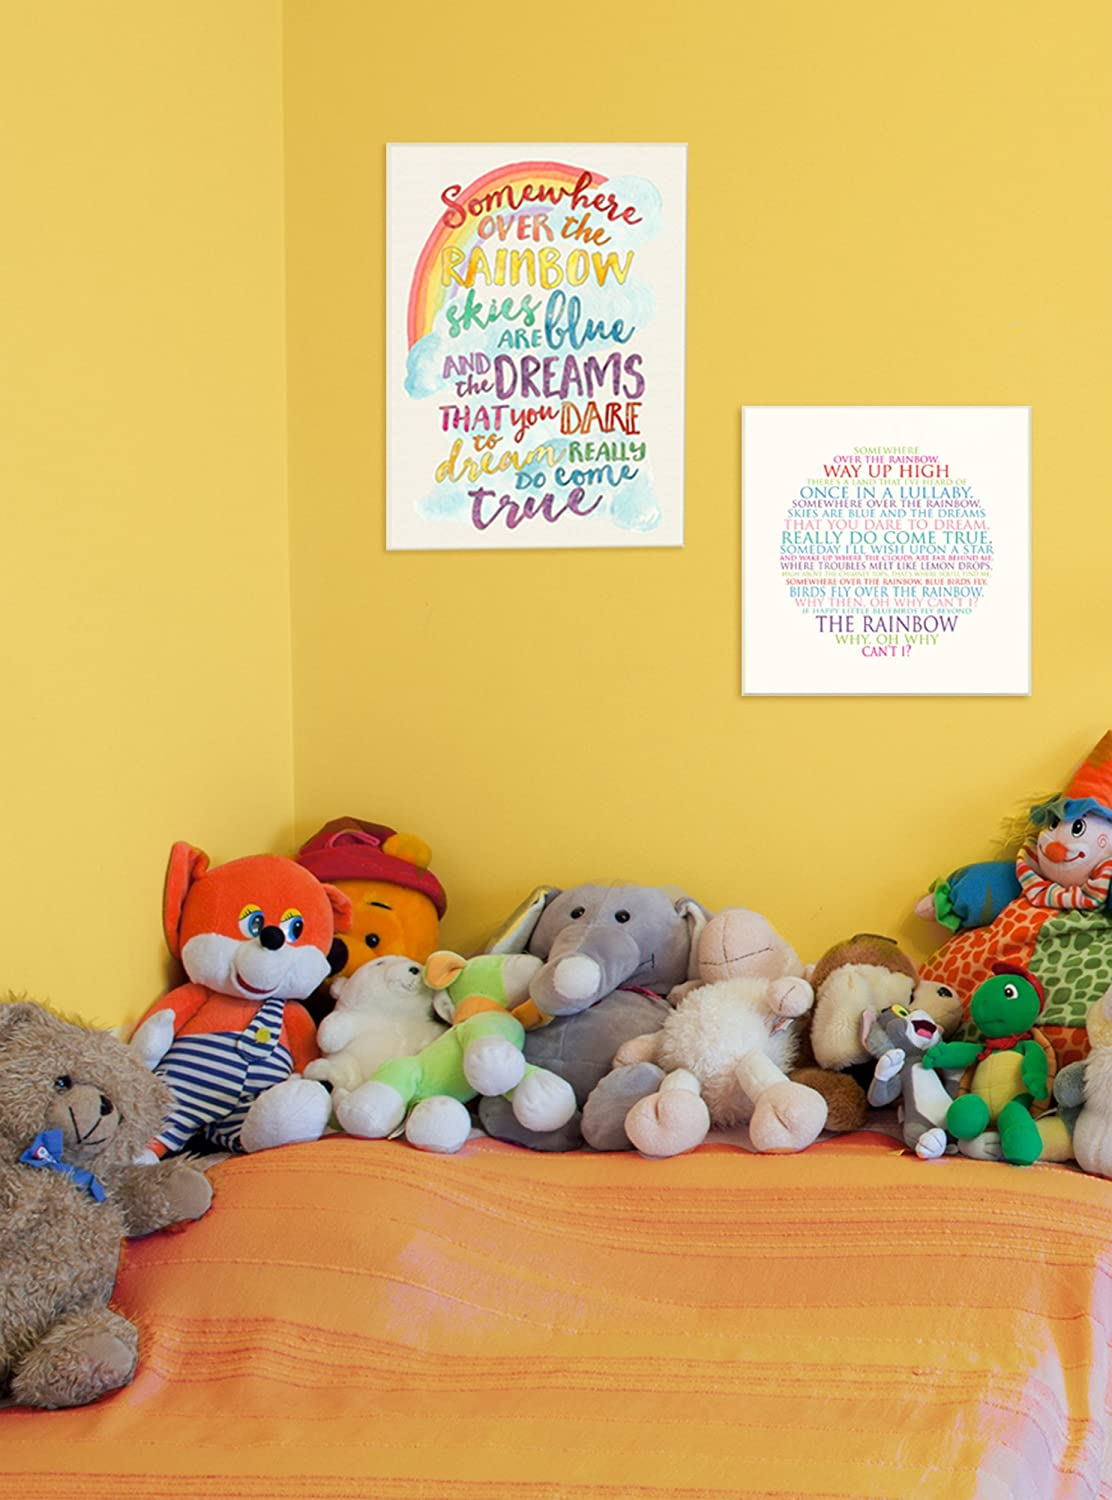 The Kids Room by Stupell Somewhere Over The Rainbow with Rainbow Wall Plaque Art